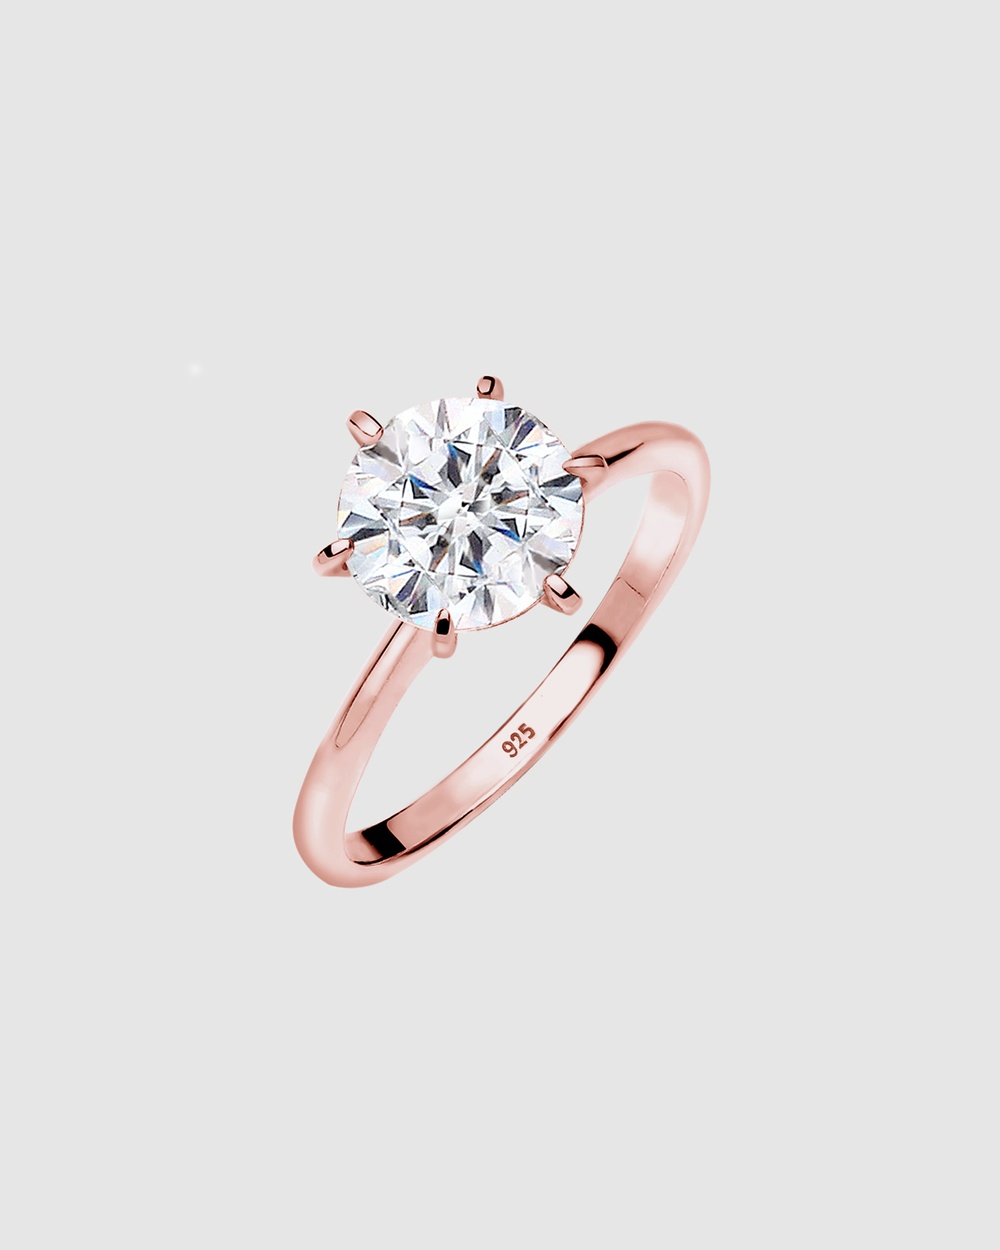 Elli Jewelry Ring 925 Sterling Silver Rose Gold Plated Crystal Jewellery Rosegold Gold-Plated